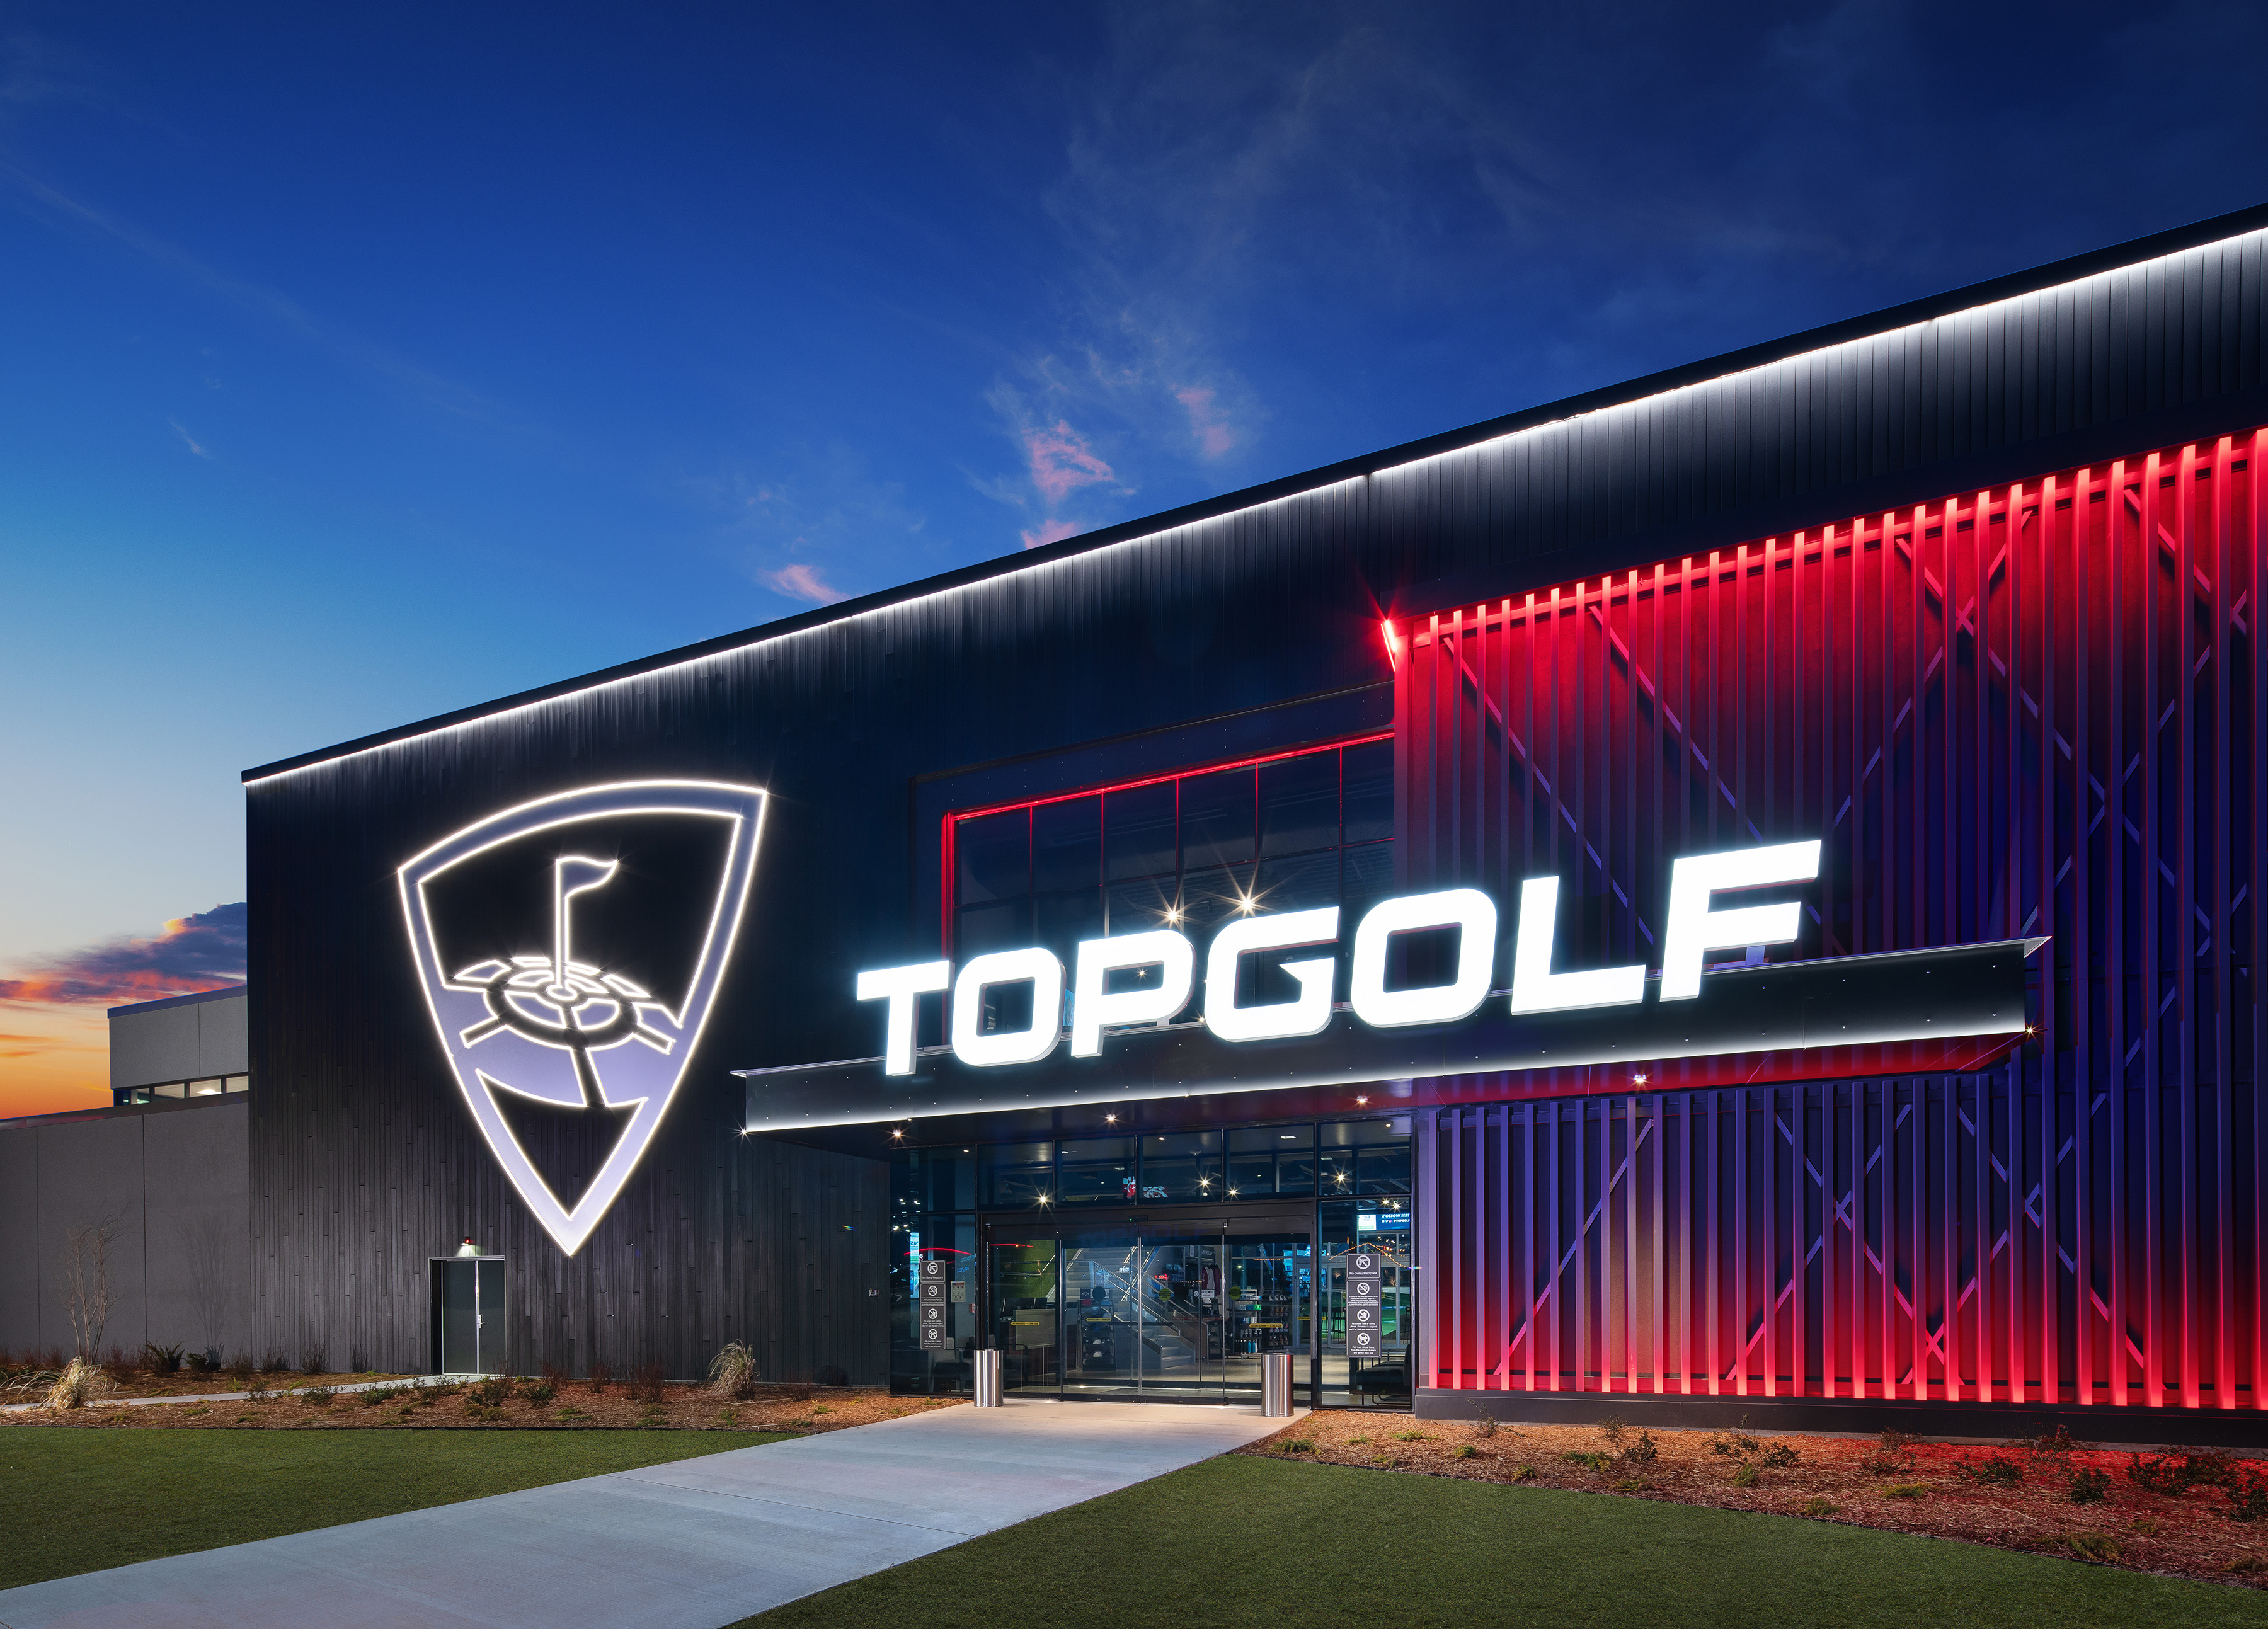 Top Golf in Rogers Arkansas